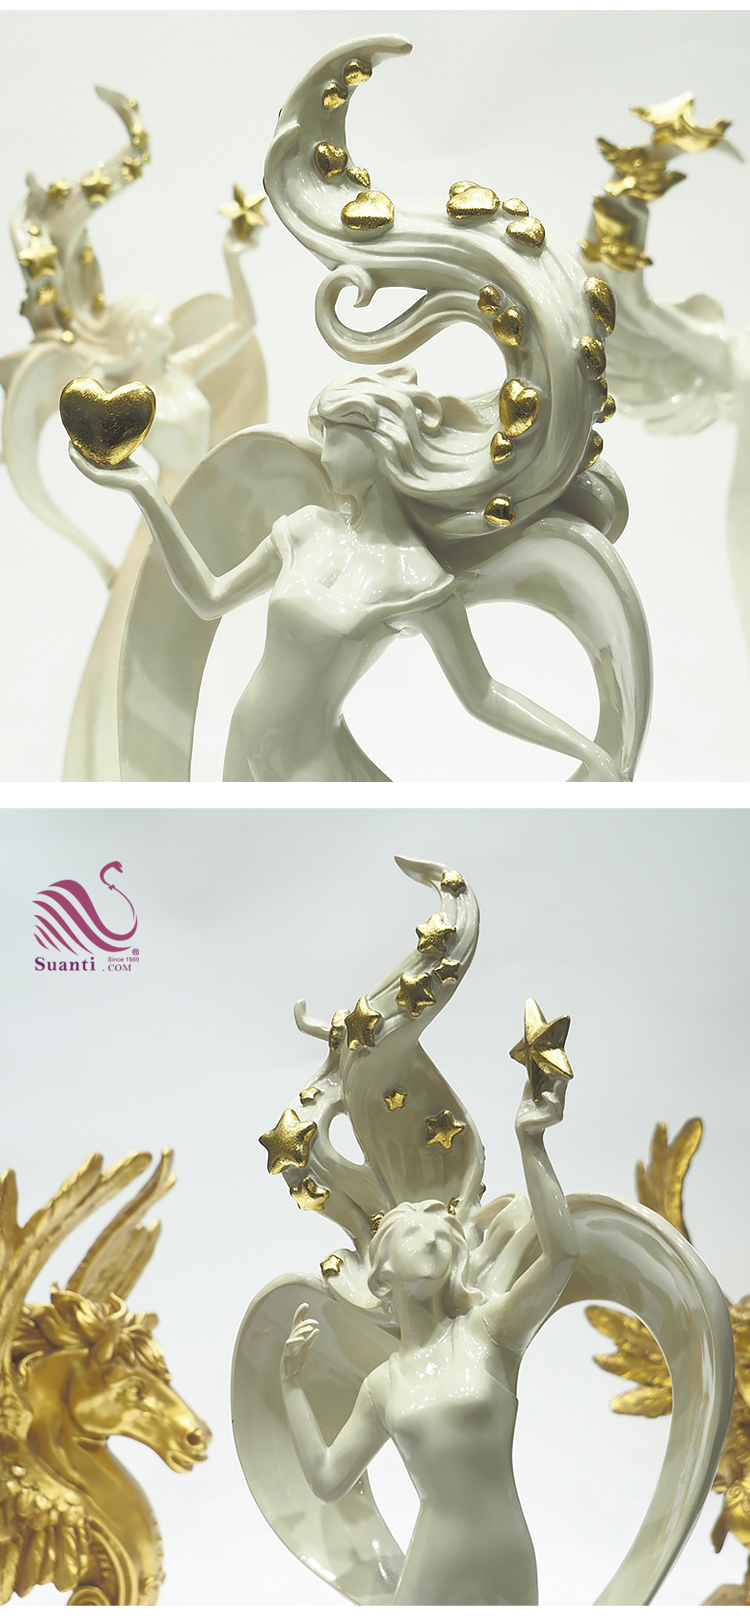 Suanti Custom Indoor Angel Beeldje Hotel Standbeeld Decoratie Sculpturen Home Decor Hars Moderne Kunst Beeldhouwkunst